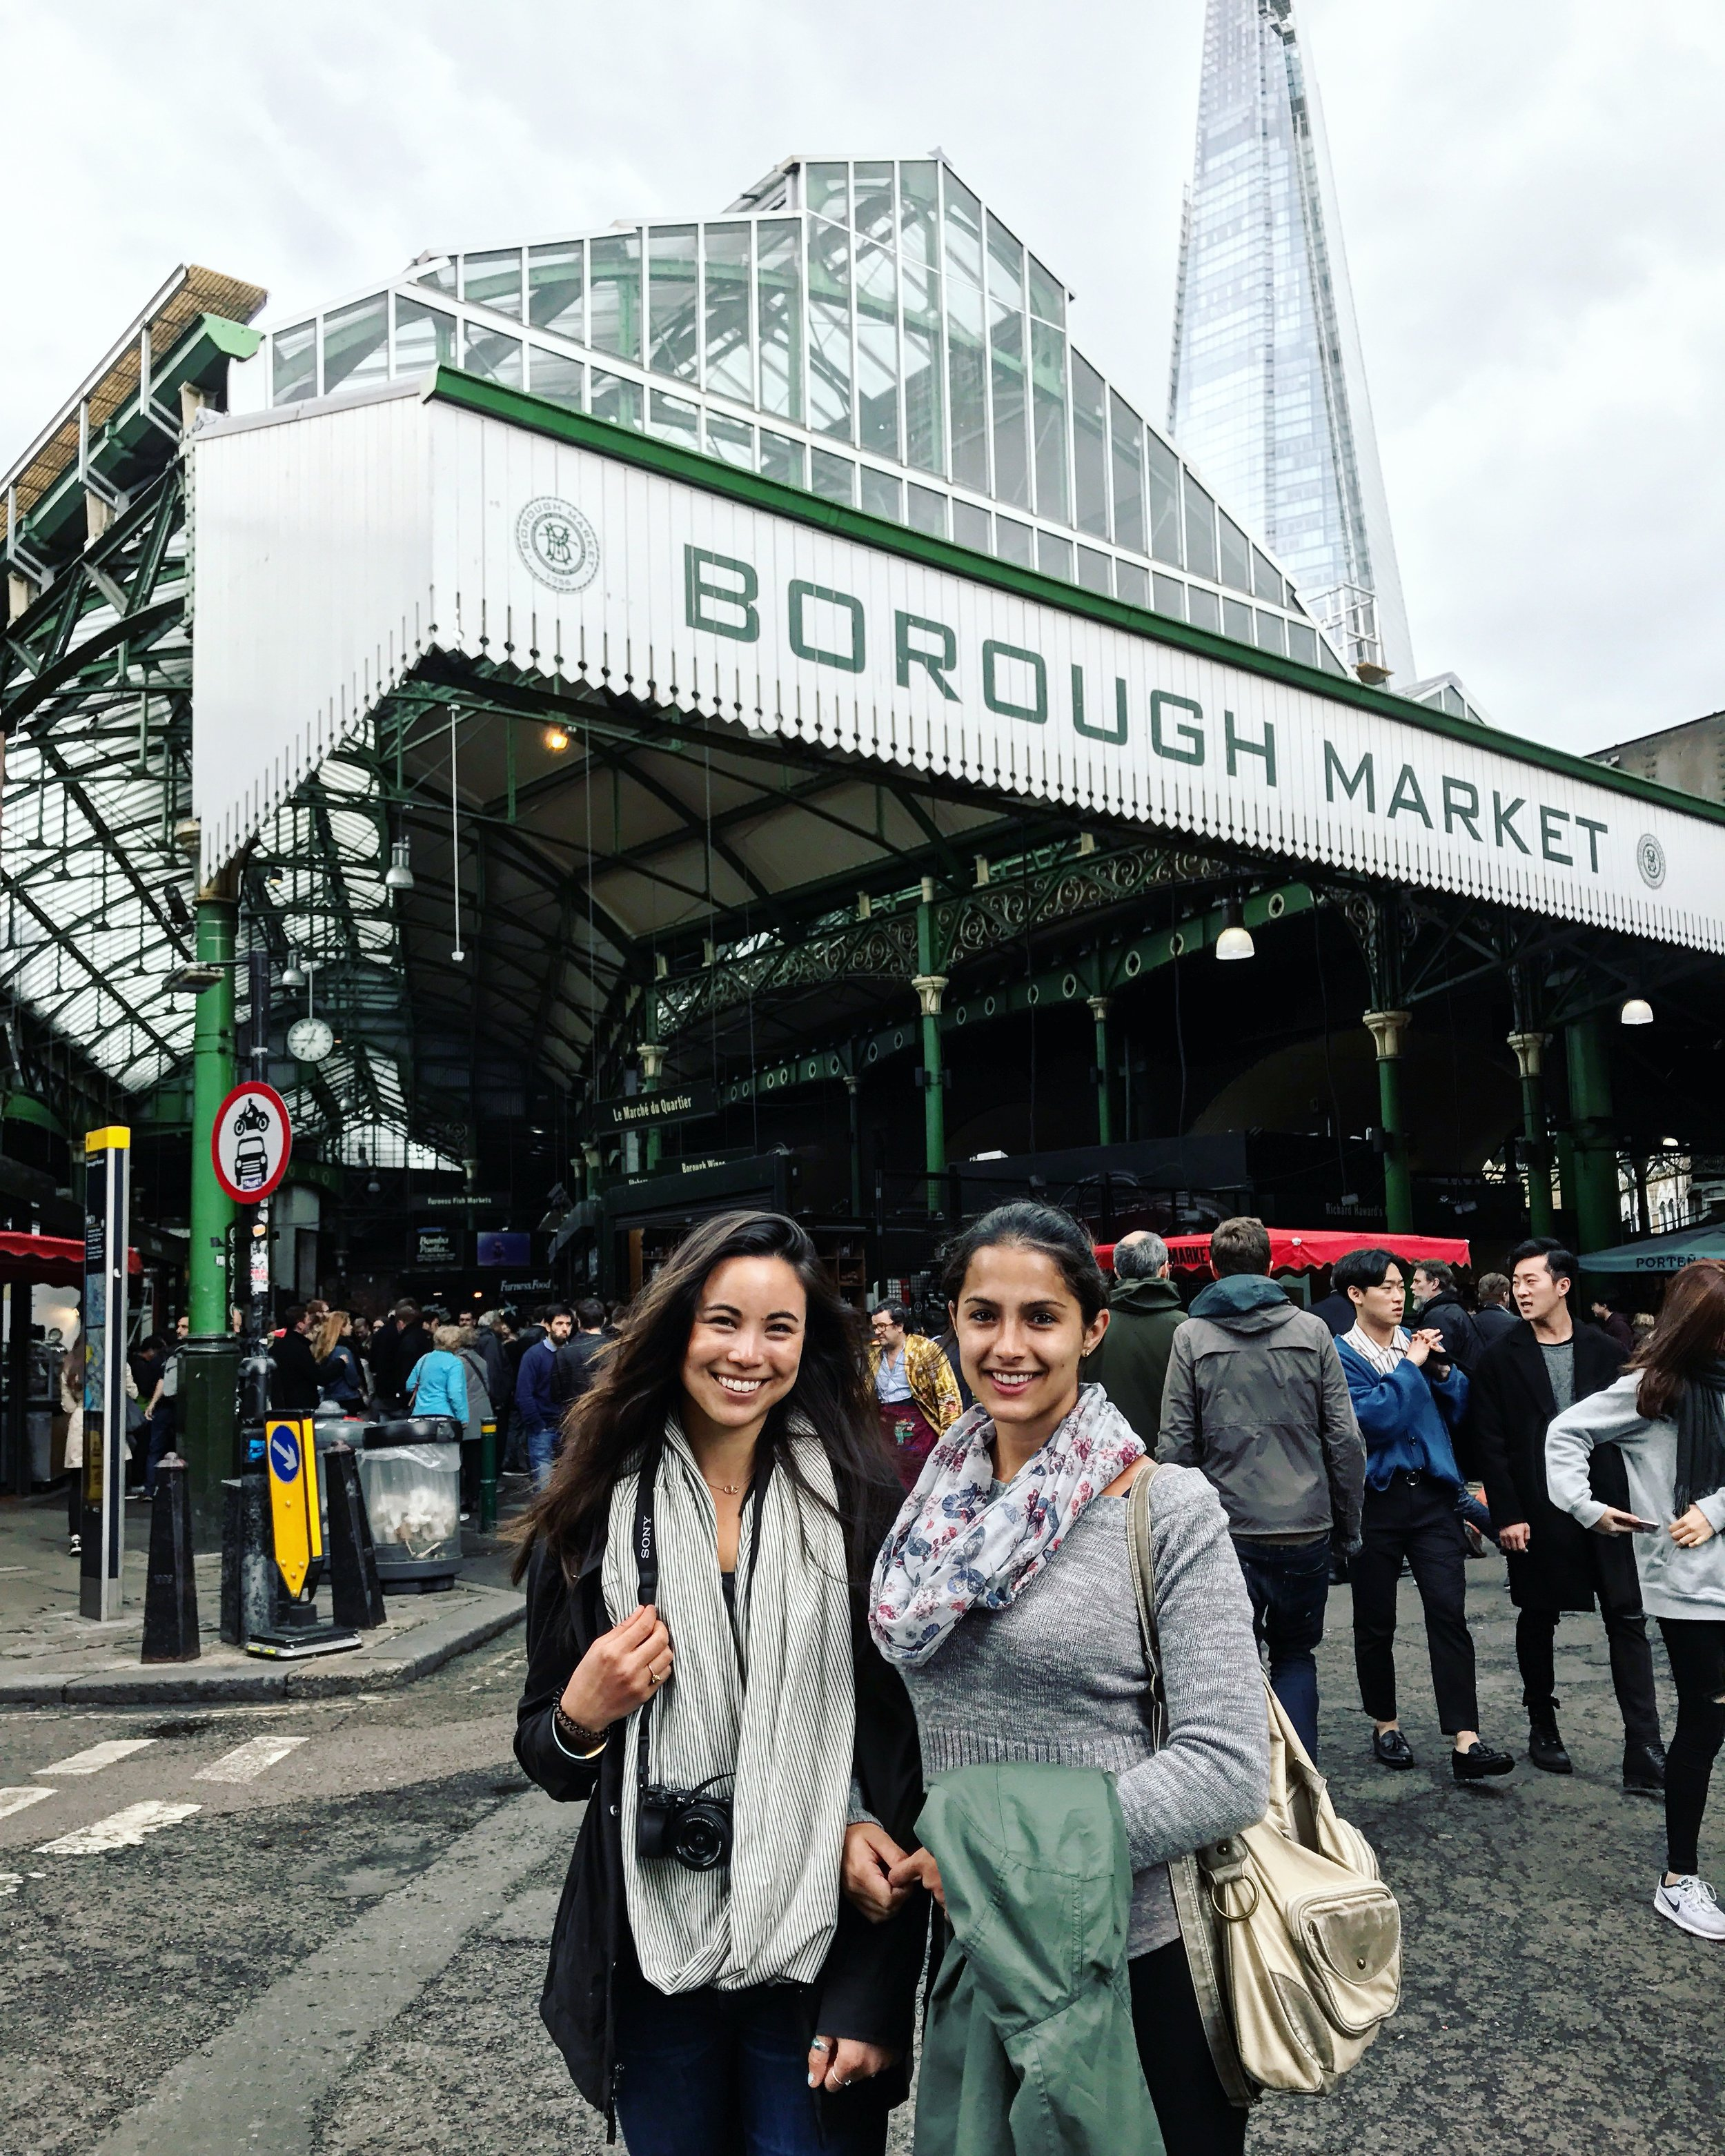 My first Couchsurfing host, Juliana, showing me around London!